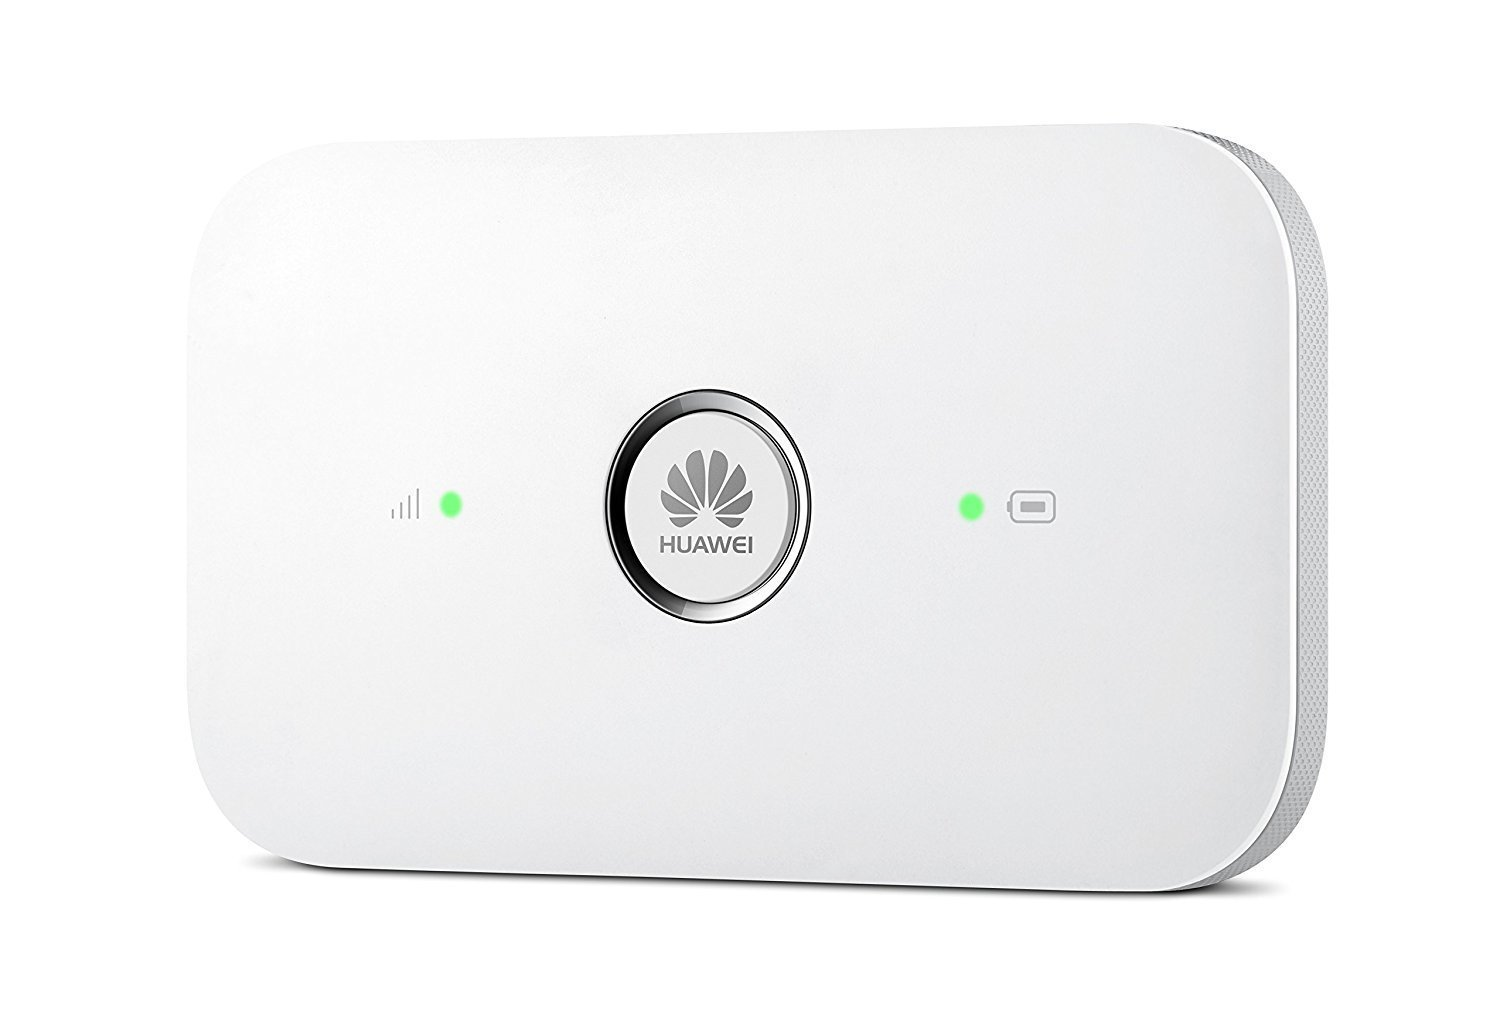 Huawei E5573Cs Unlocked 150 Mbps 4G LTE & 50 Mpbs 3G Mobile WiFi (4G LTE in Europe, Asia, Middle East, Africa and partial LATAM)  by Huawei